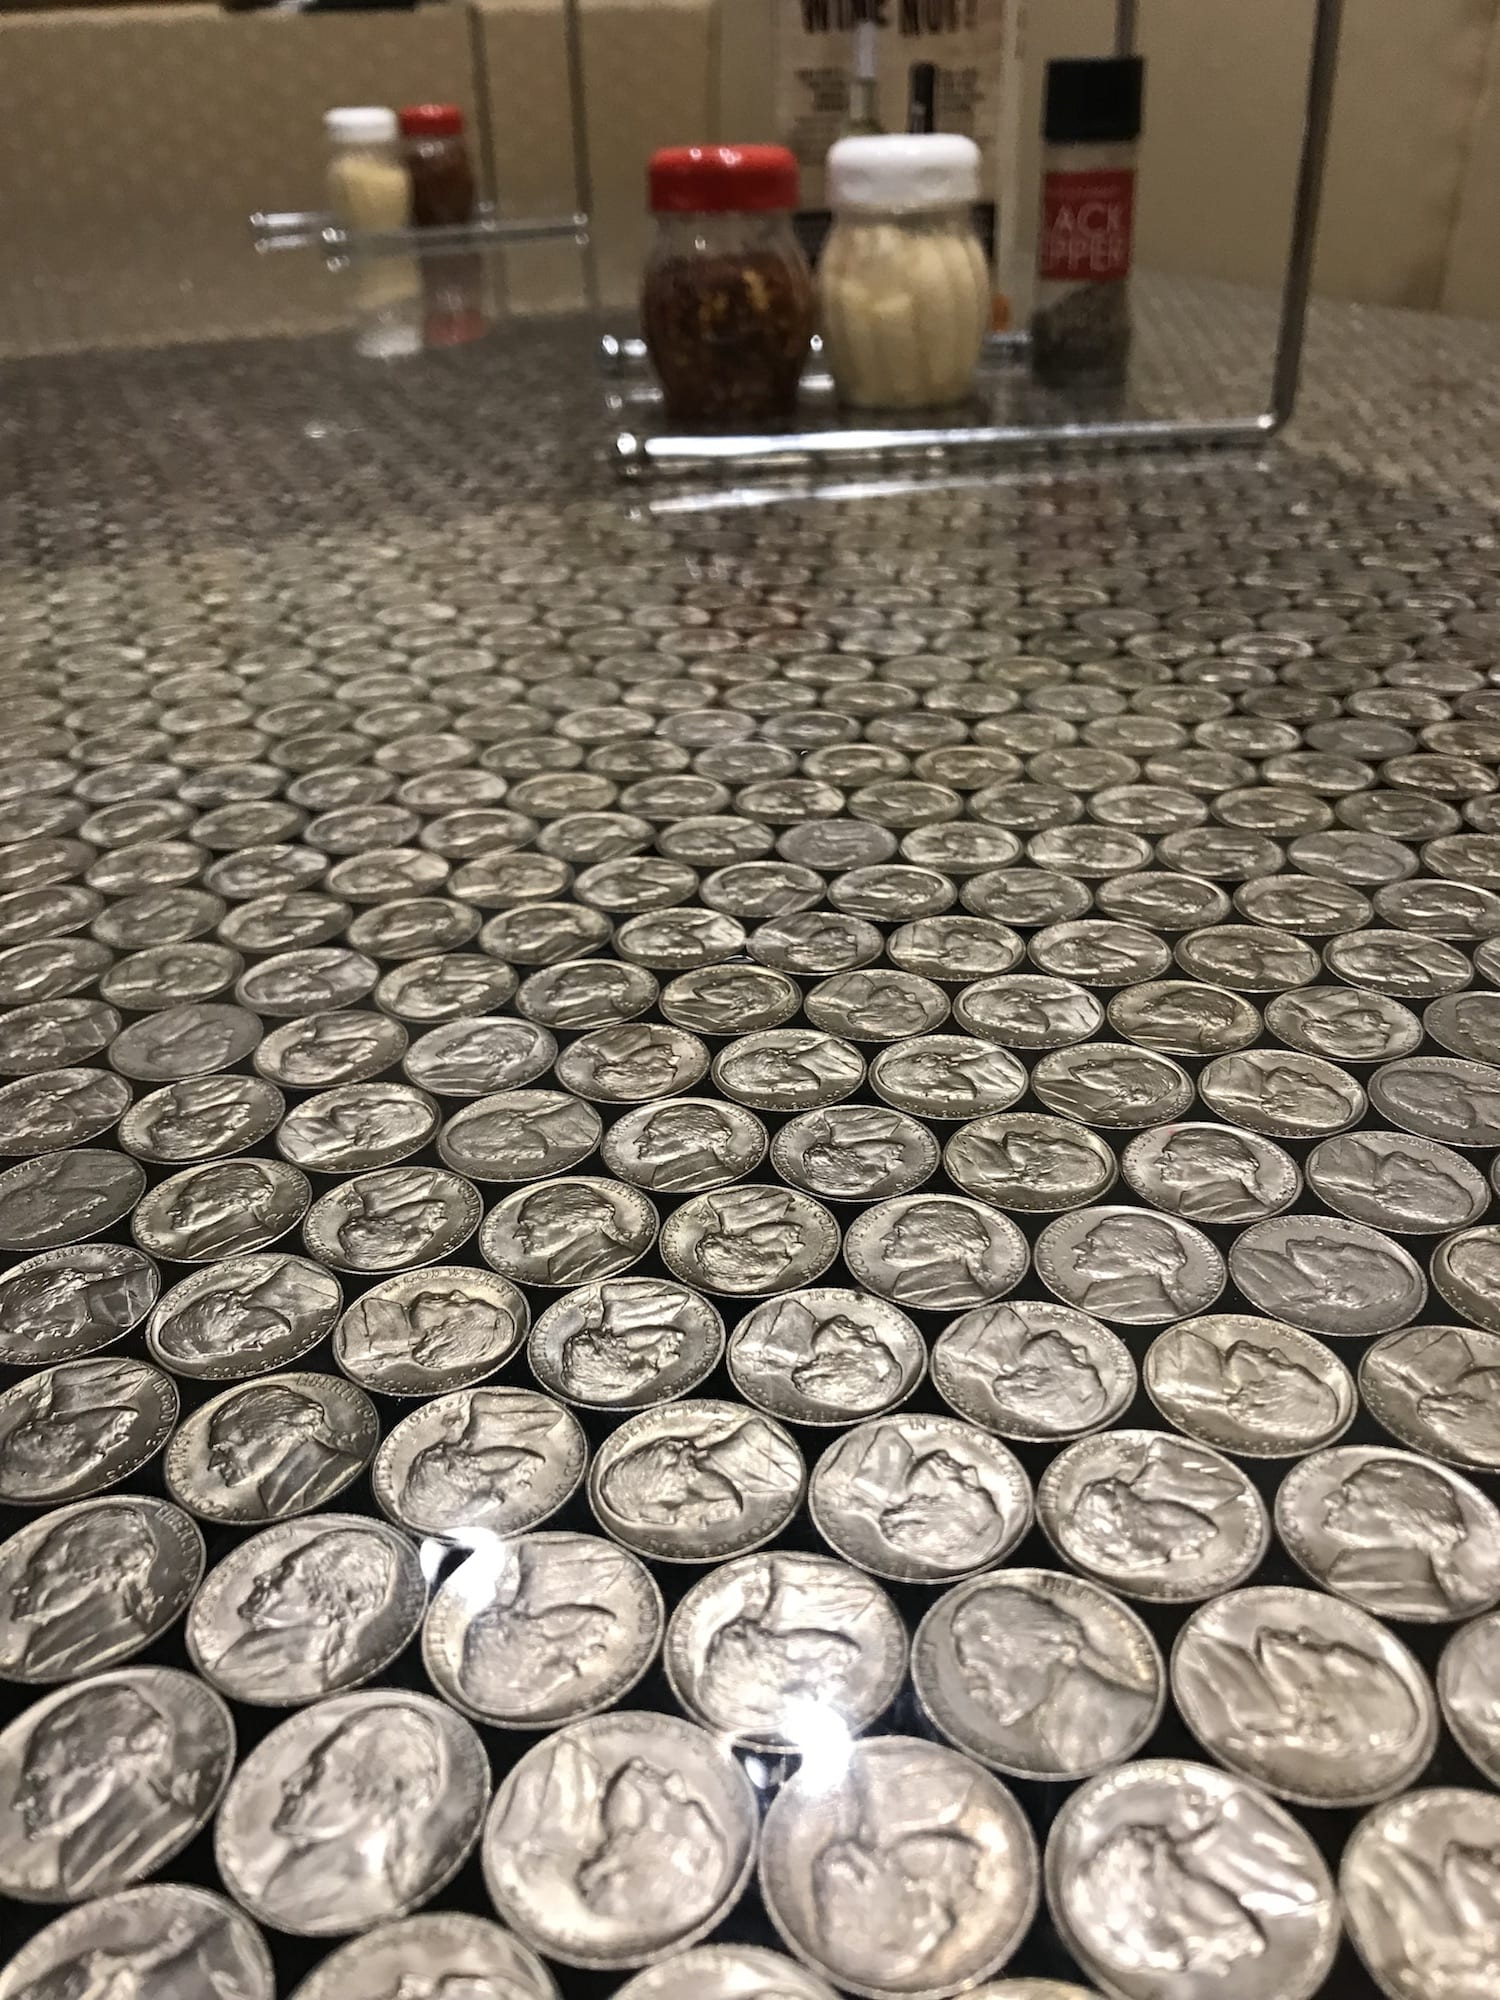 nickel table at Mellow Mushroom